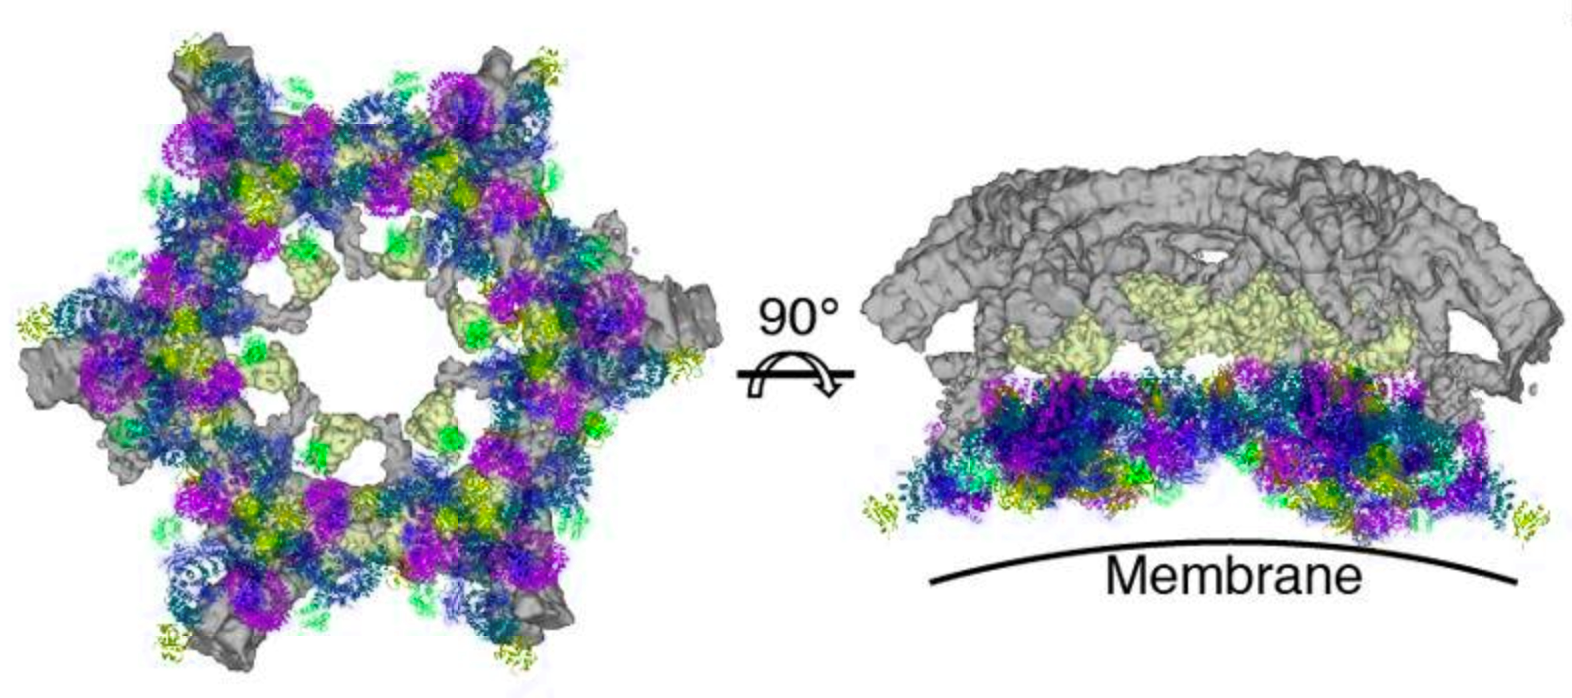 Cryoelectron microscopy structures of Nef and Arf1-bound AP-1 predict a hexagonal assembly (left) whose inner and outer faces bi